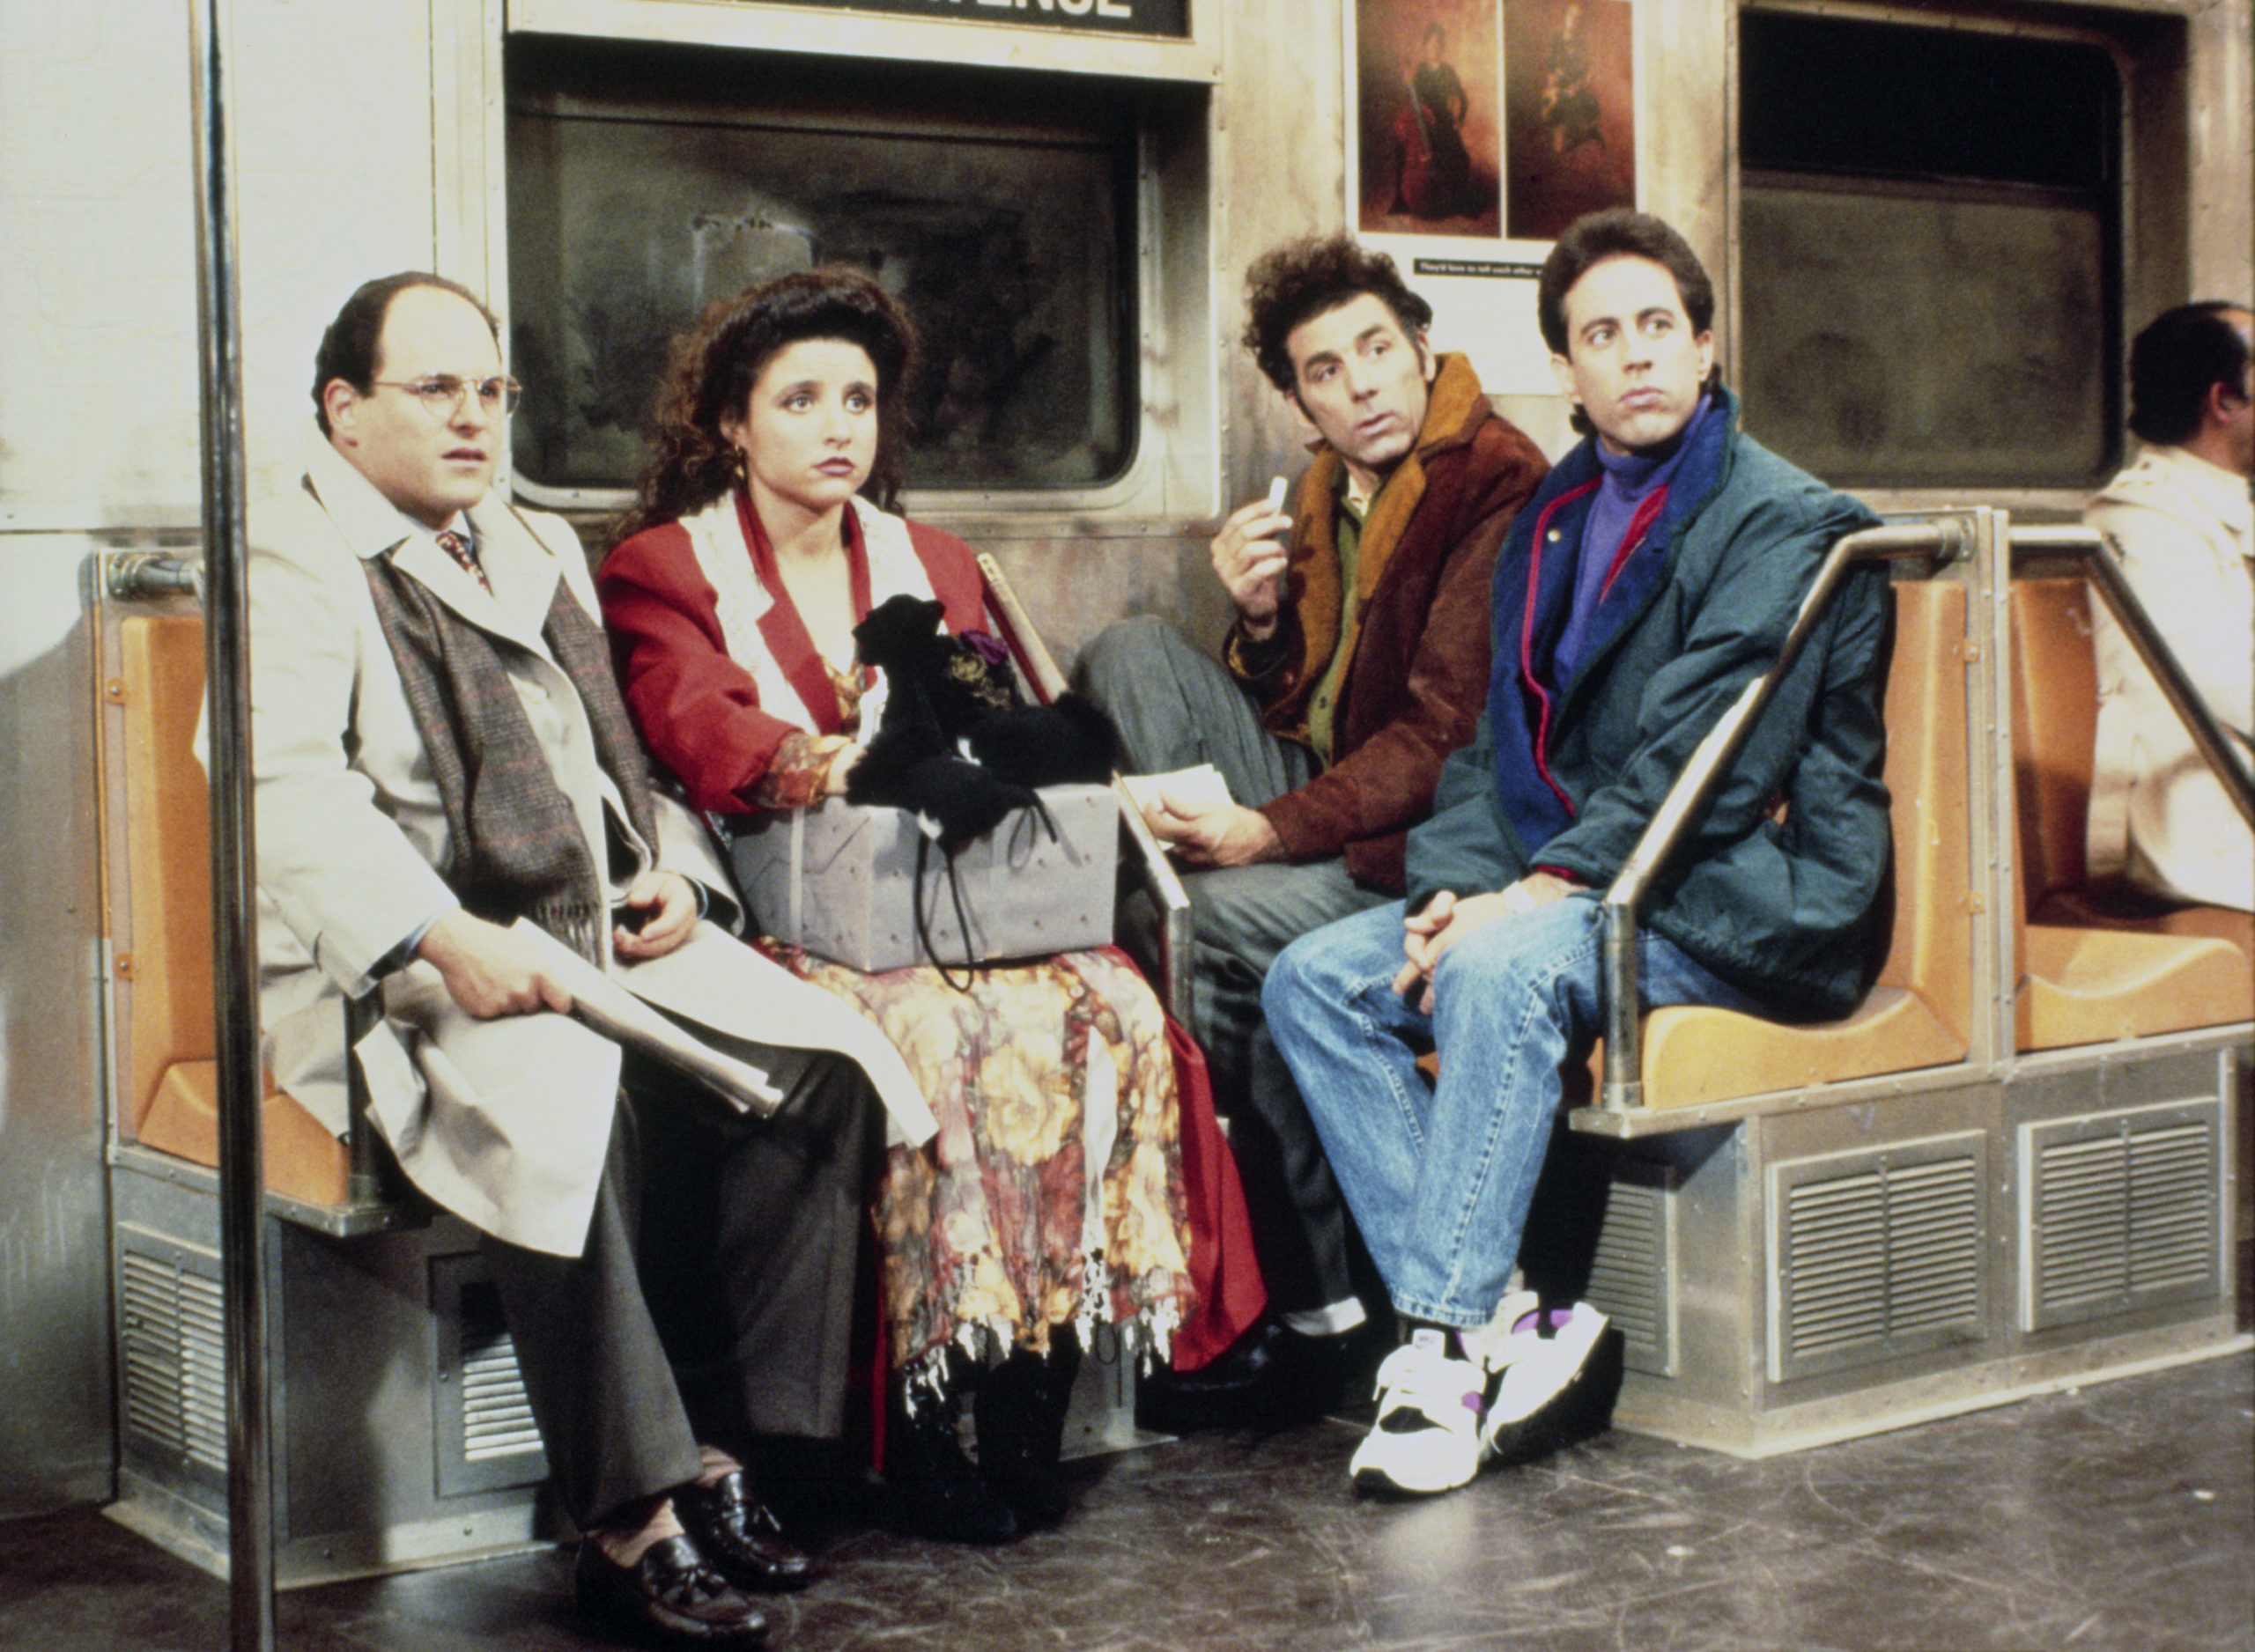 Seinfeld and friends on New York subway.